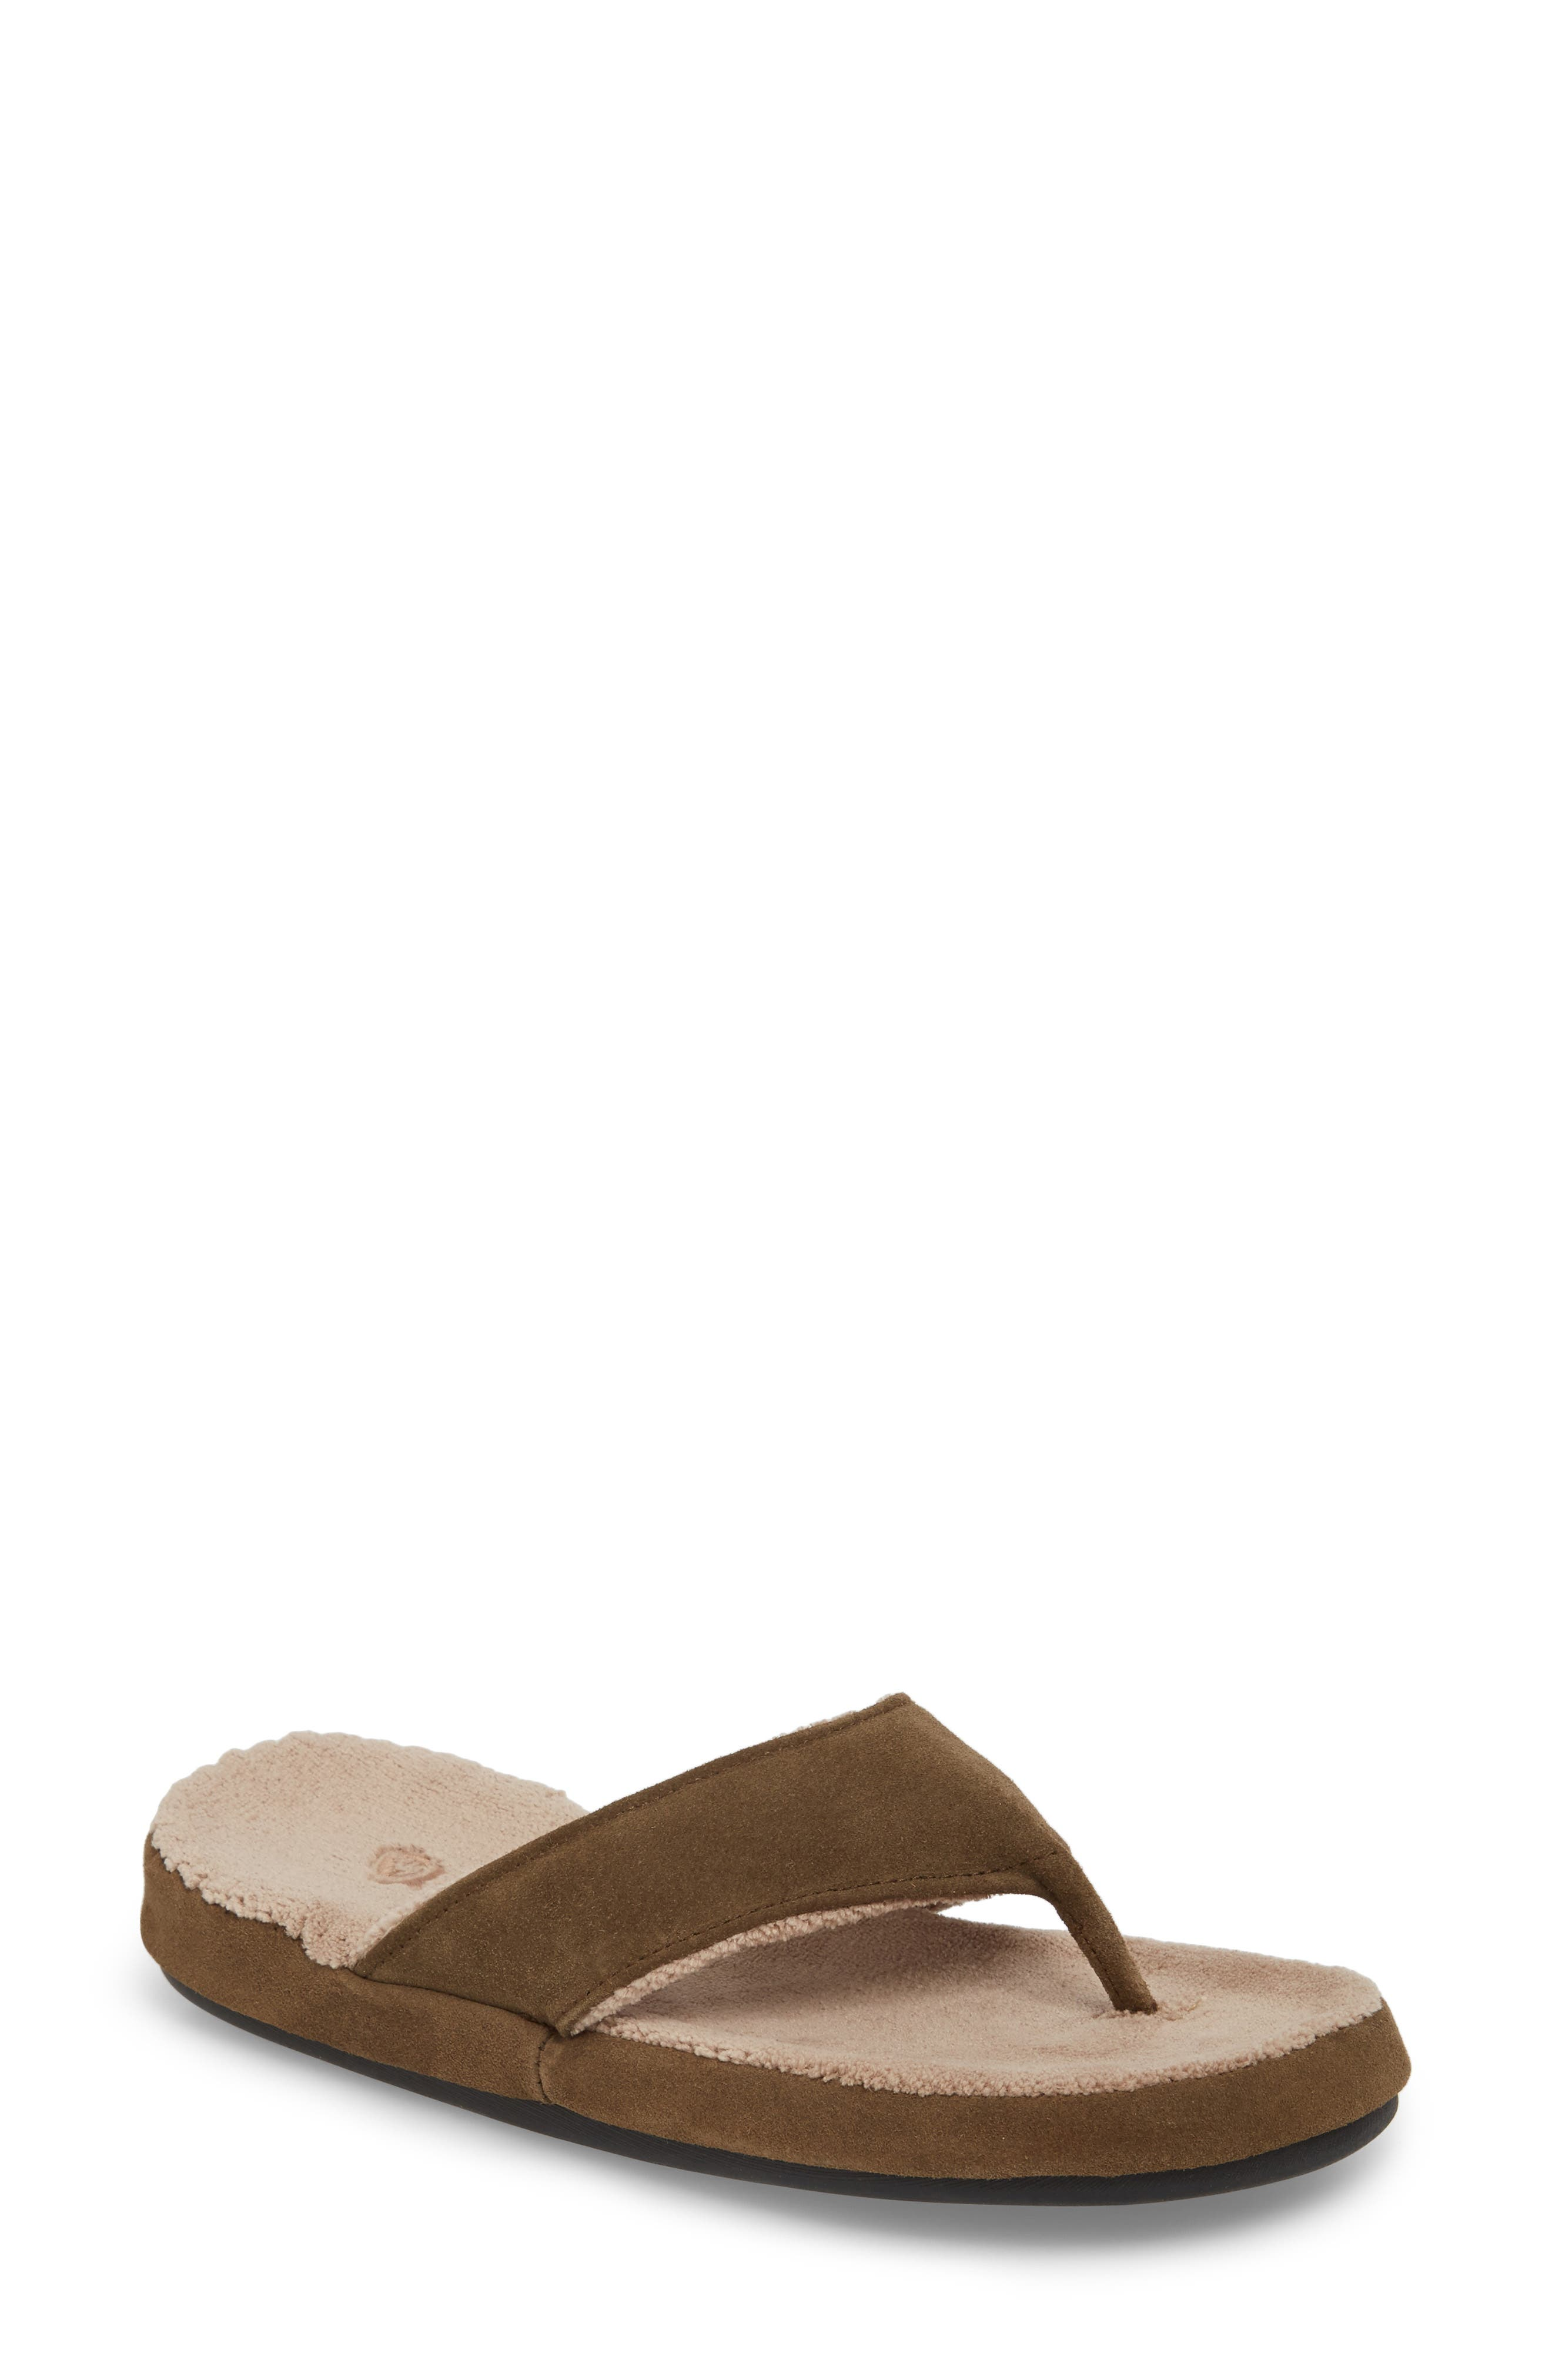 Spa Slipper,                         Main,                         color, Smoky Taupe